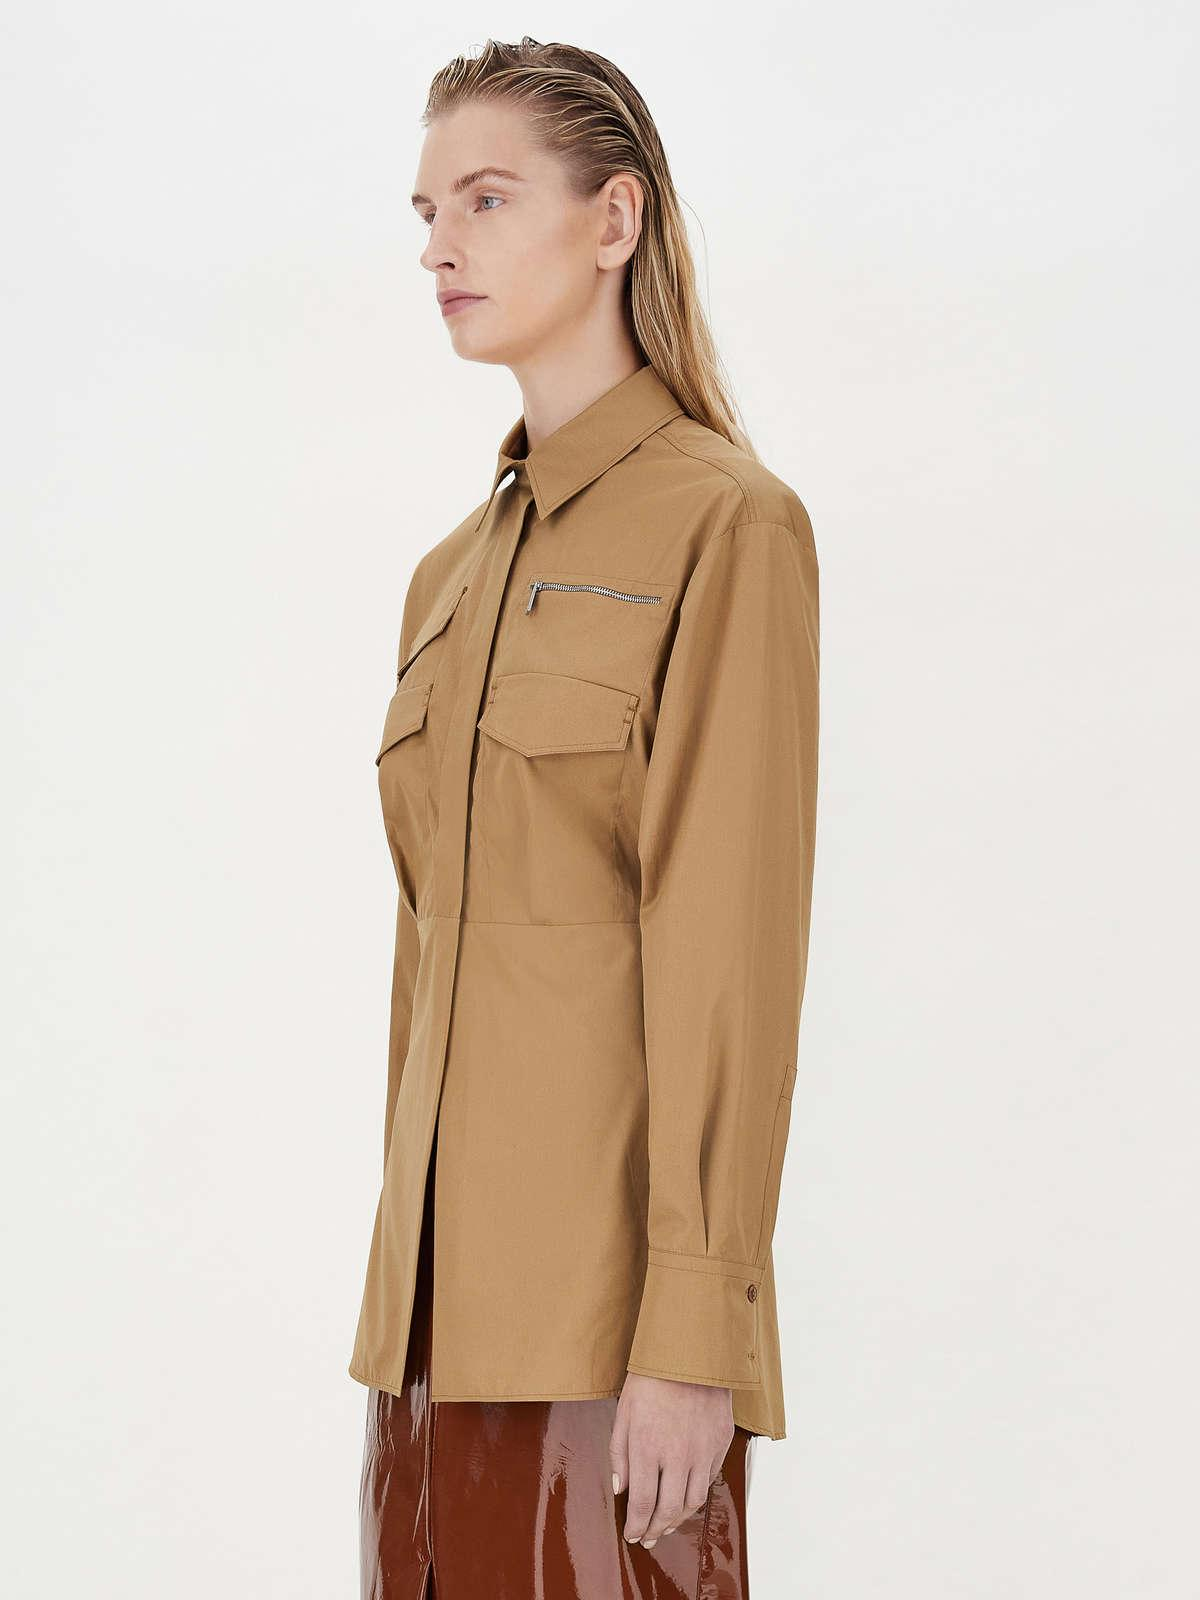 Womens Max Mara Blouses | Shirt With Patch Pockets Hazelnut Brown